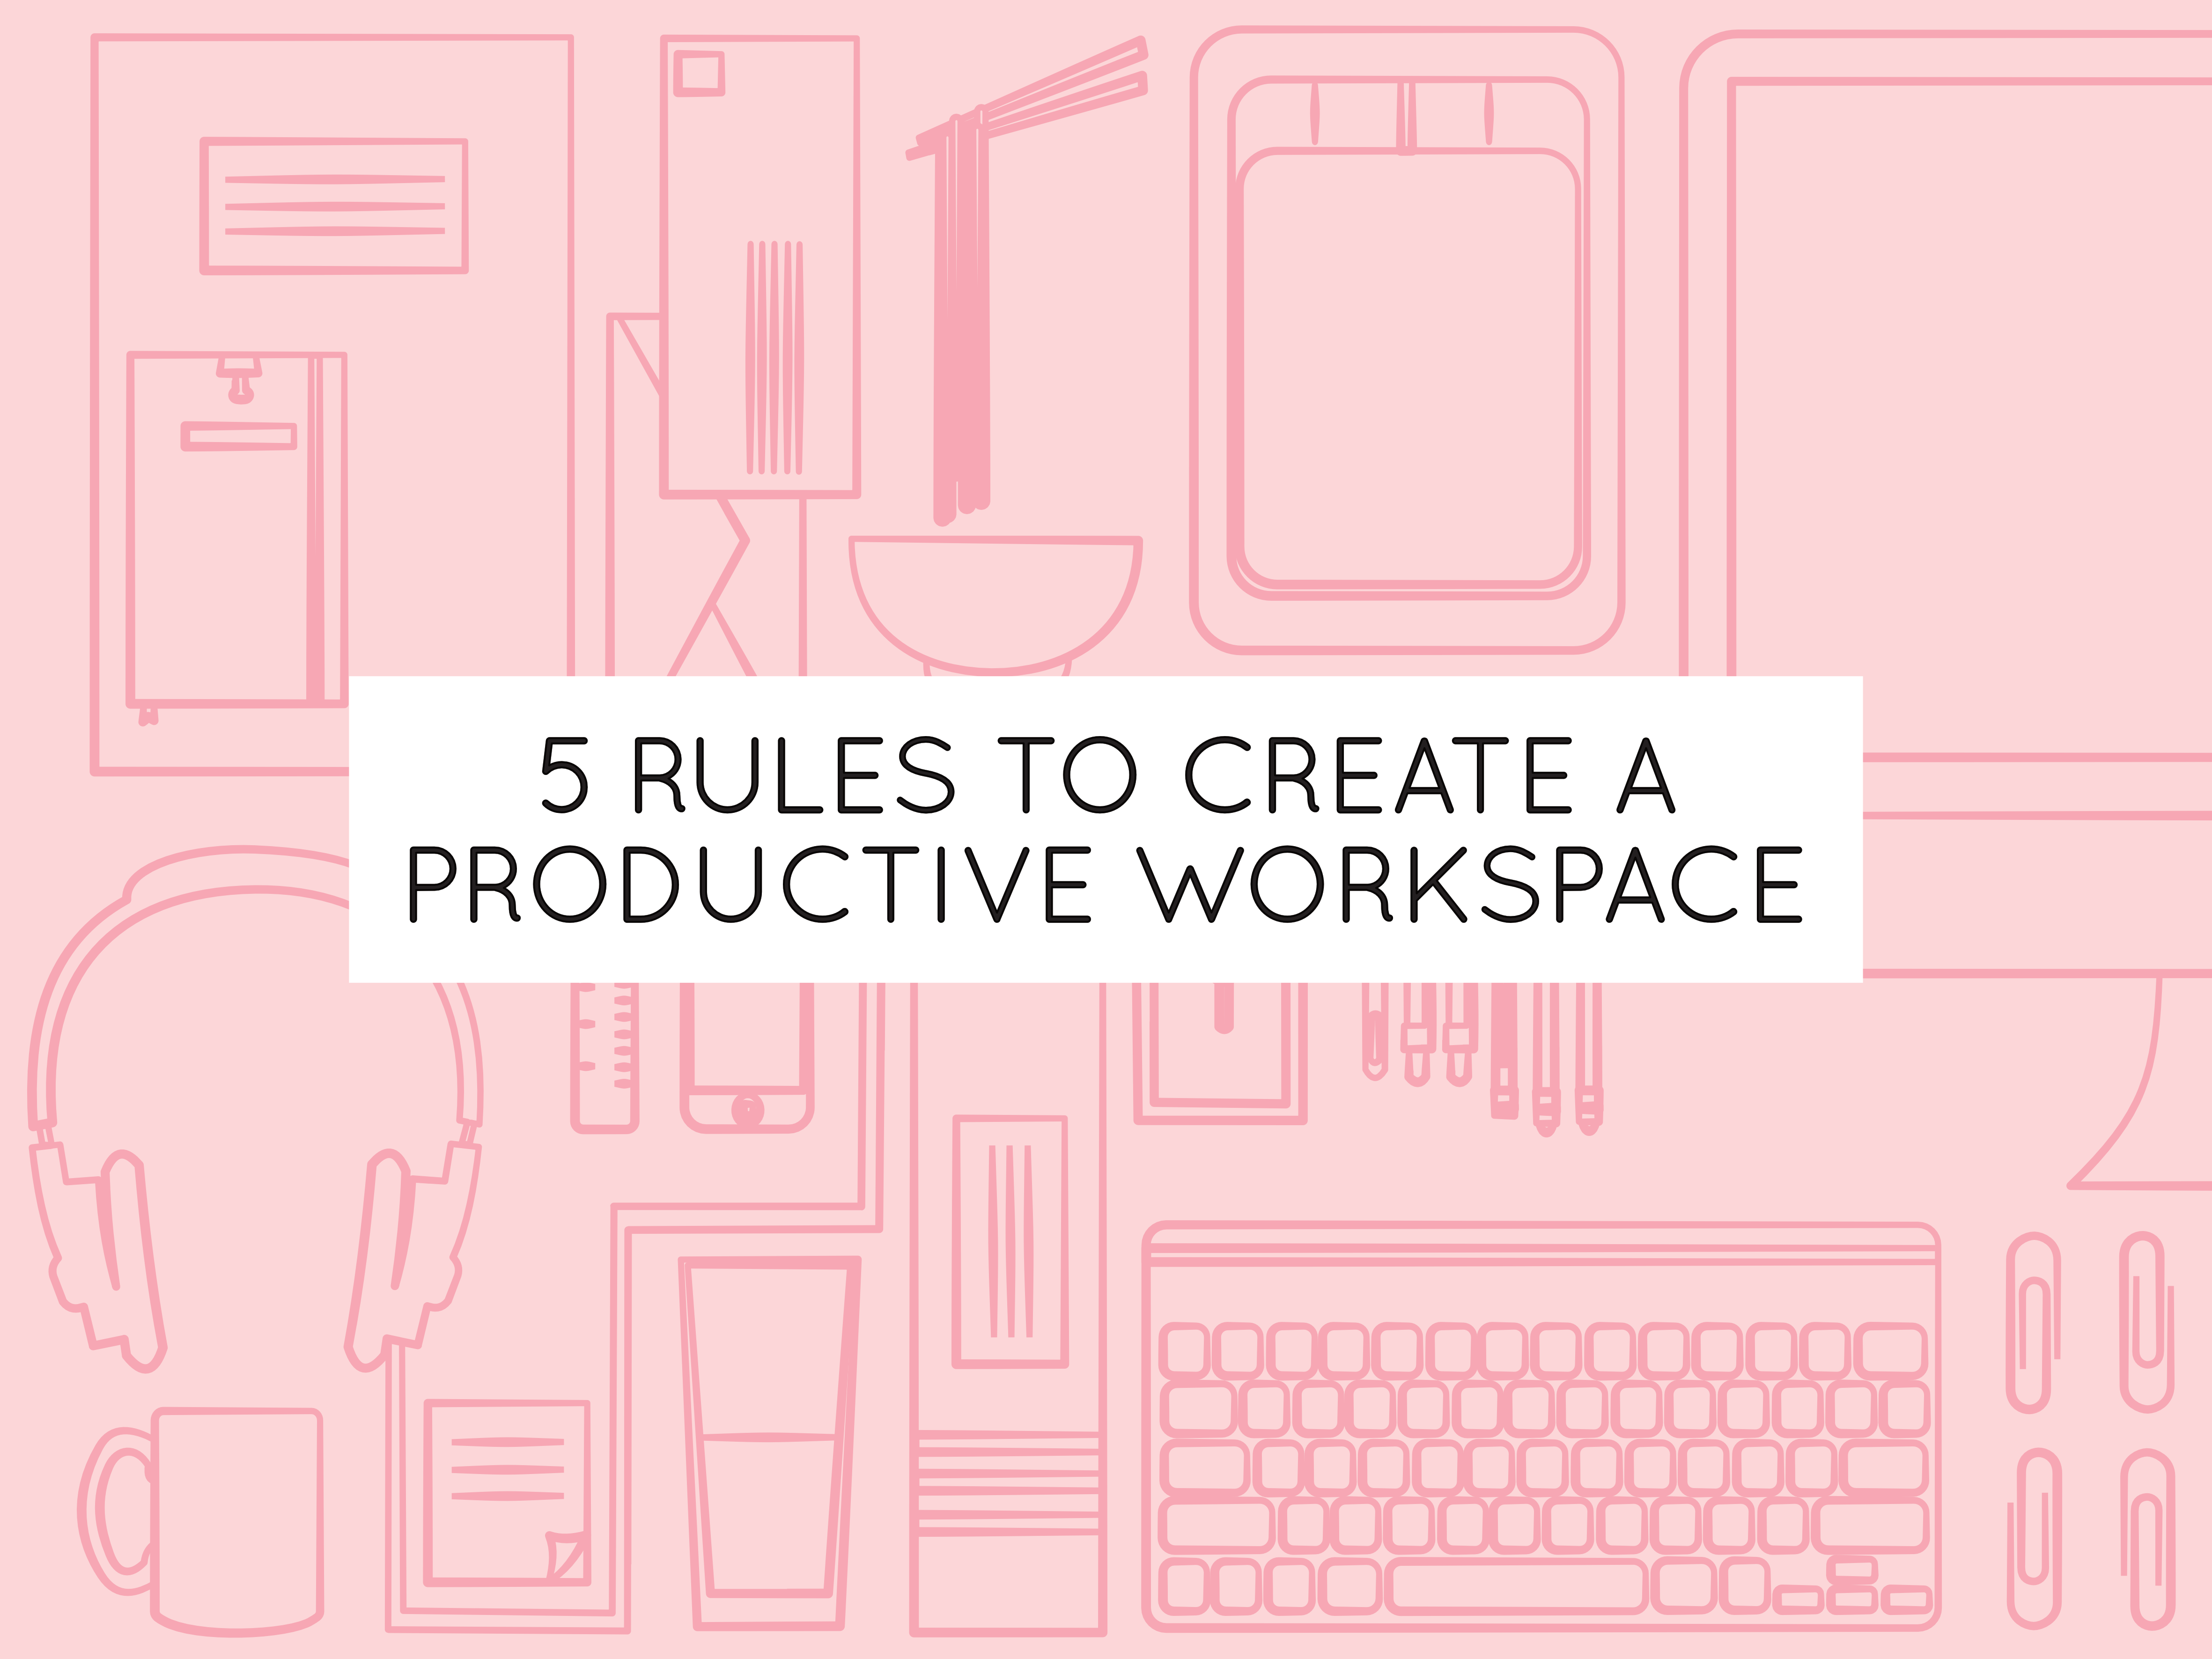 5 rules for creating a creative productive workspace